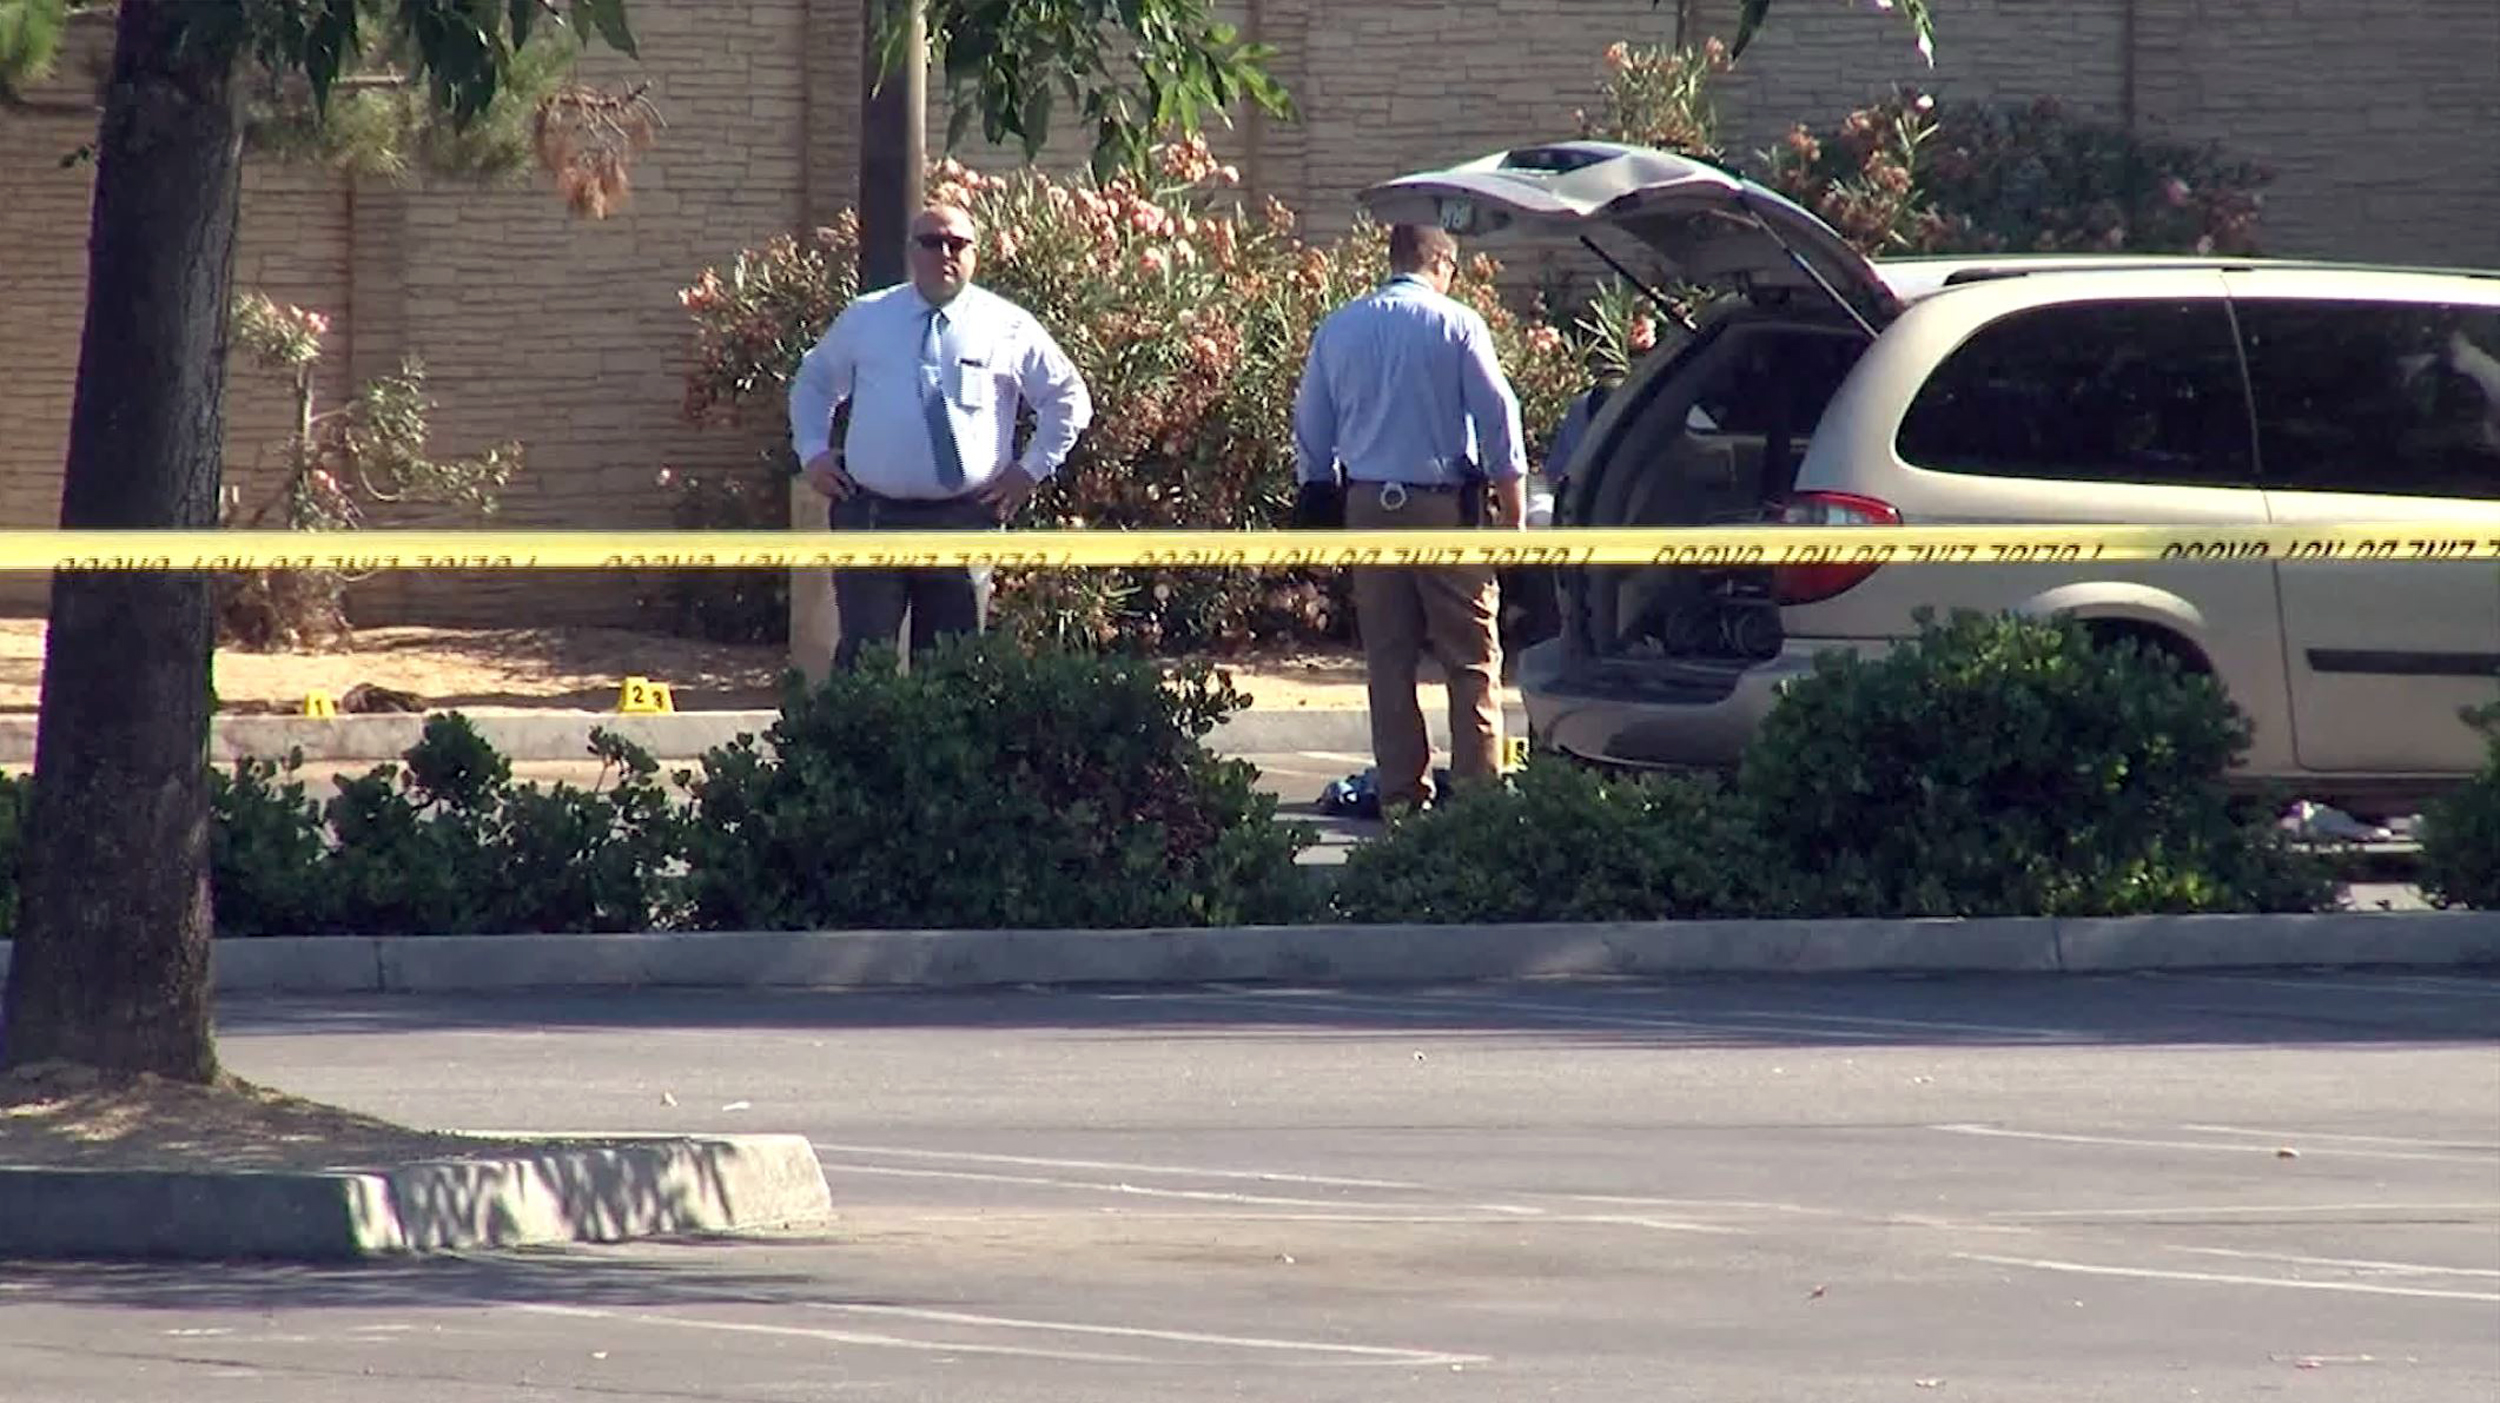 Woman found dead in Costco parking lot in California was likely attacked by dogs